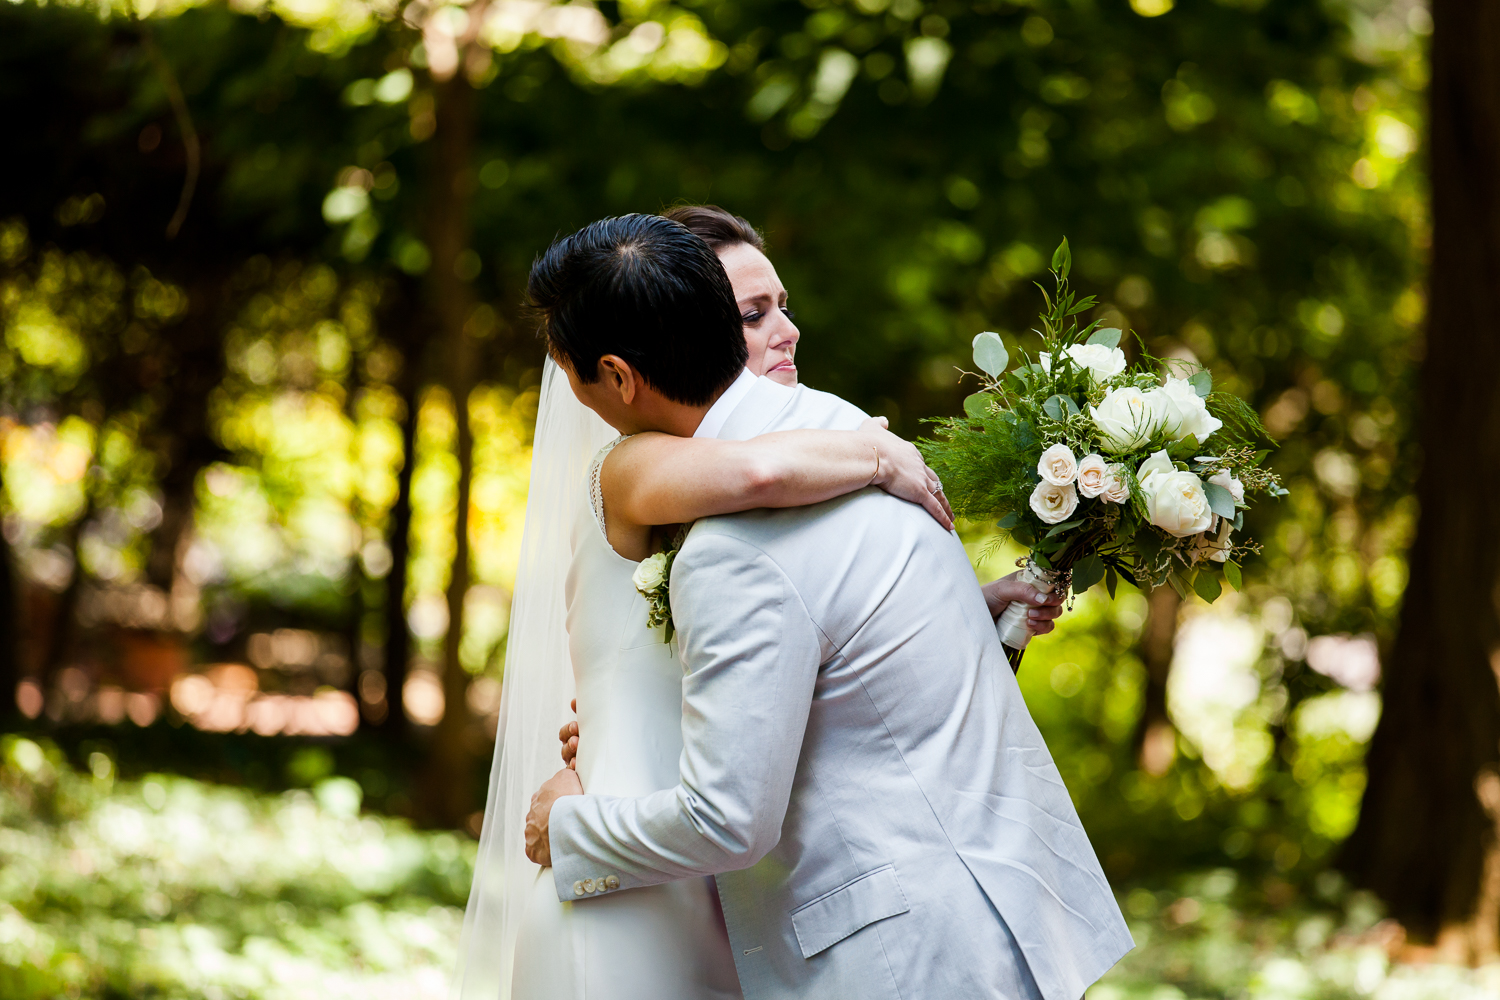 Bride and groom share a touching hug.